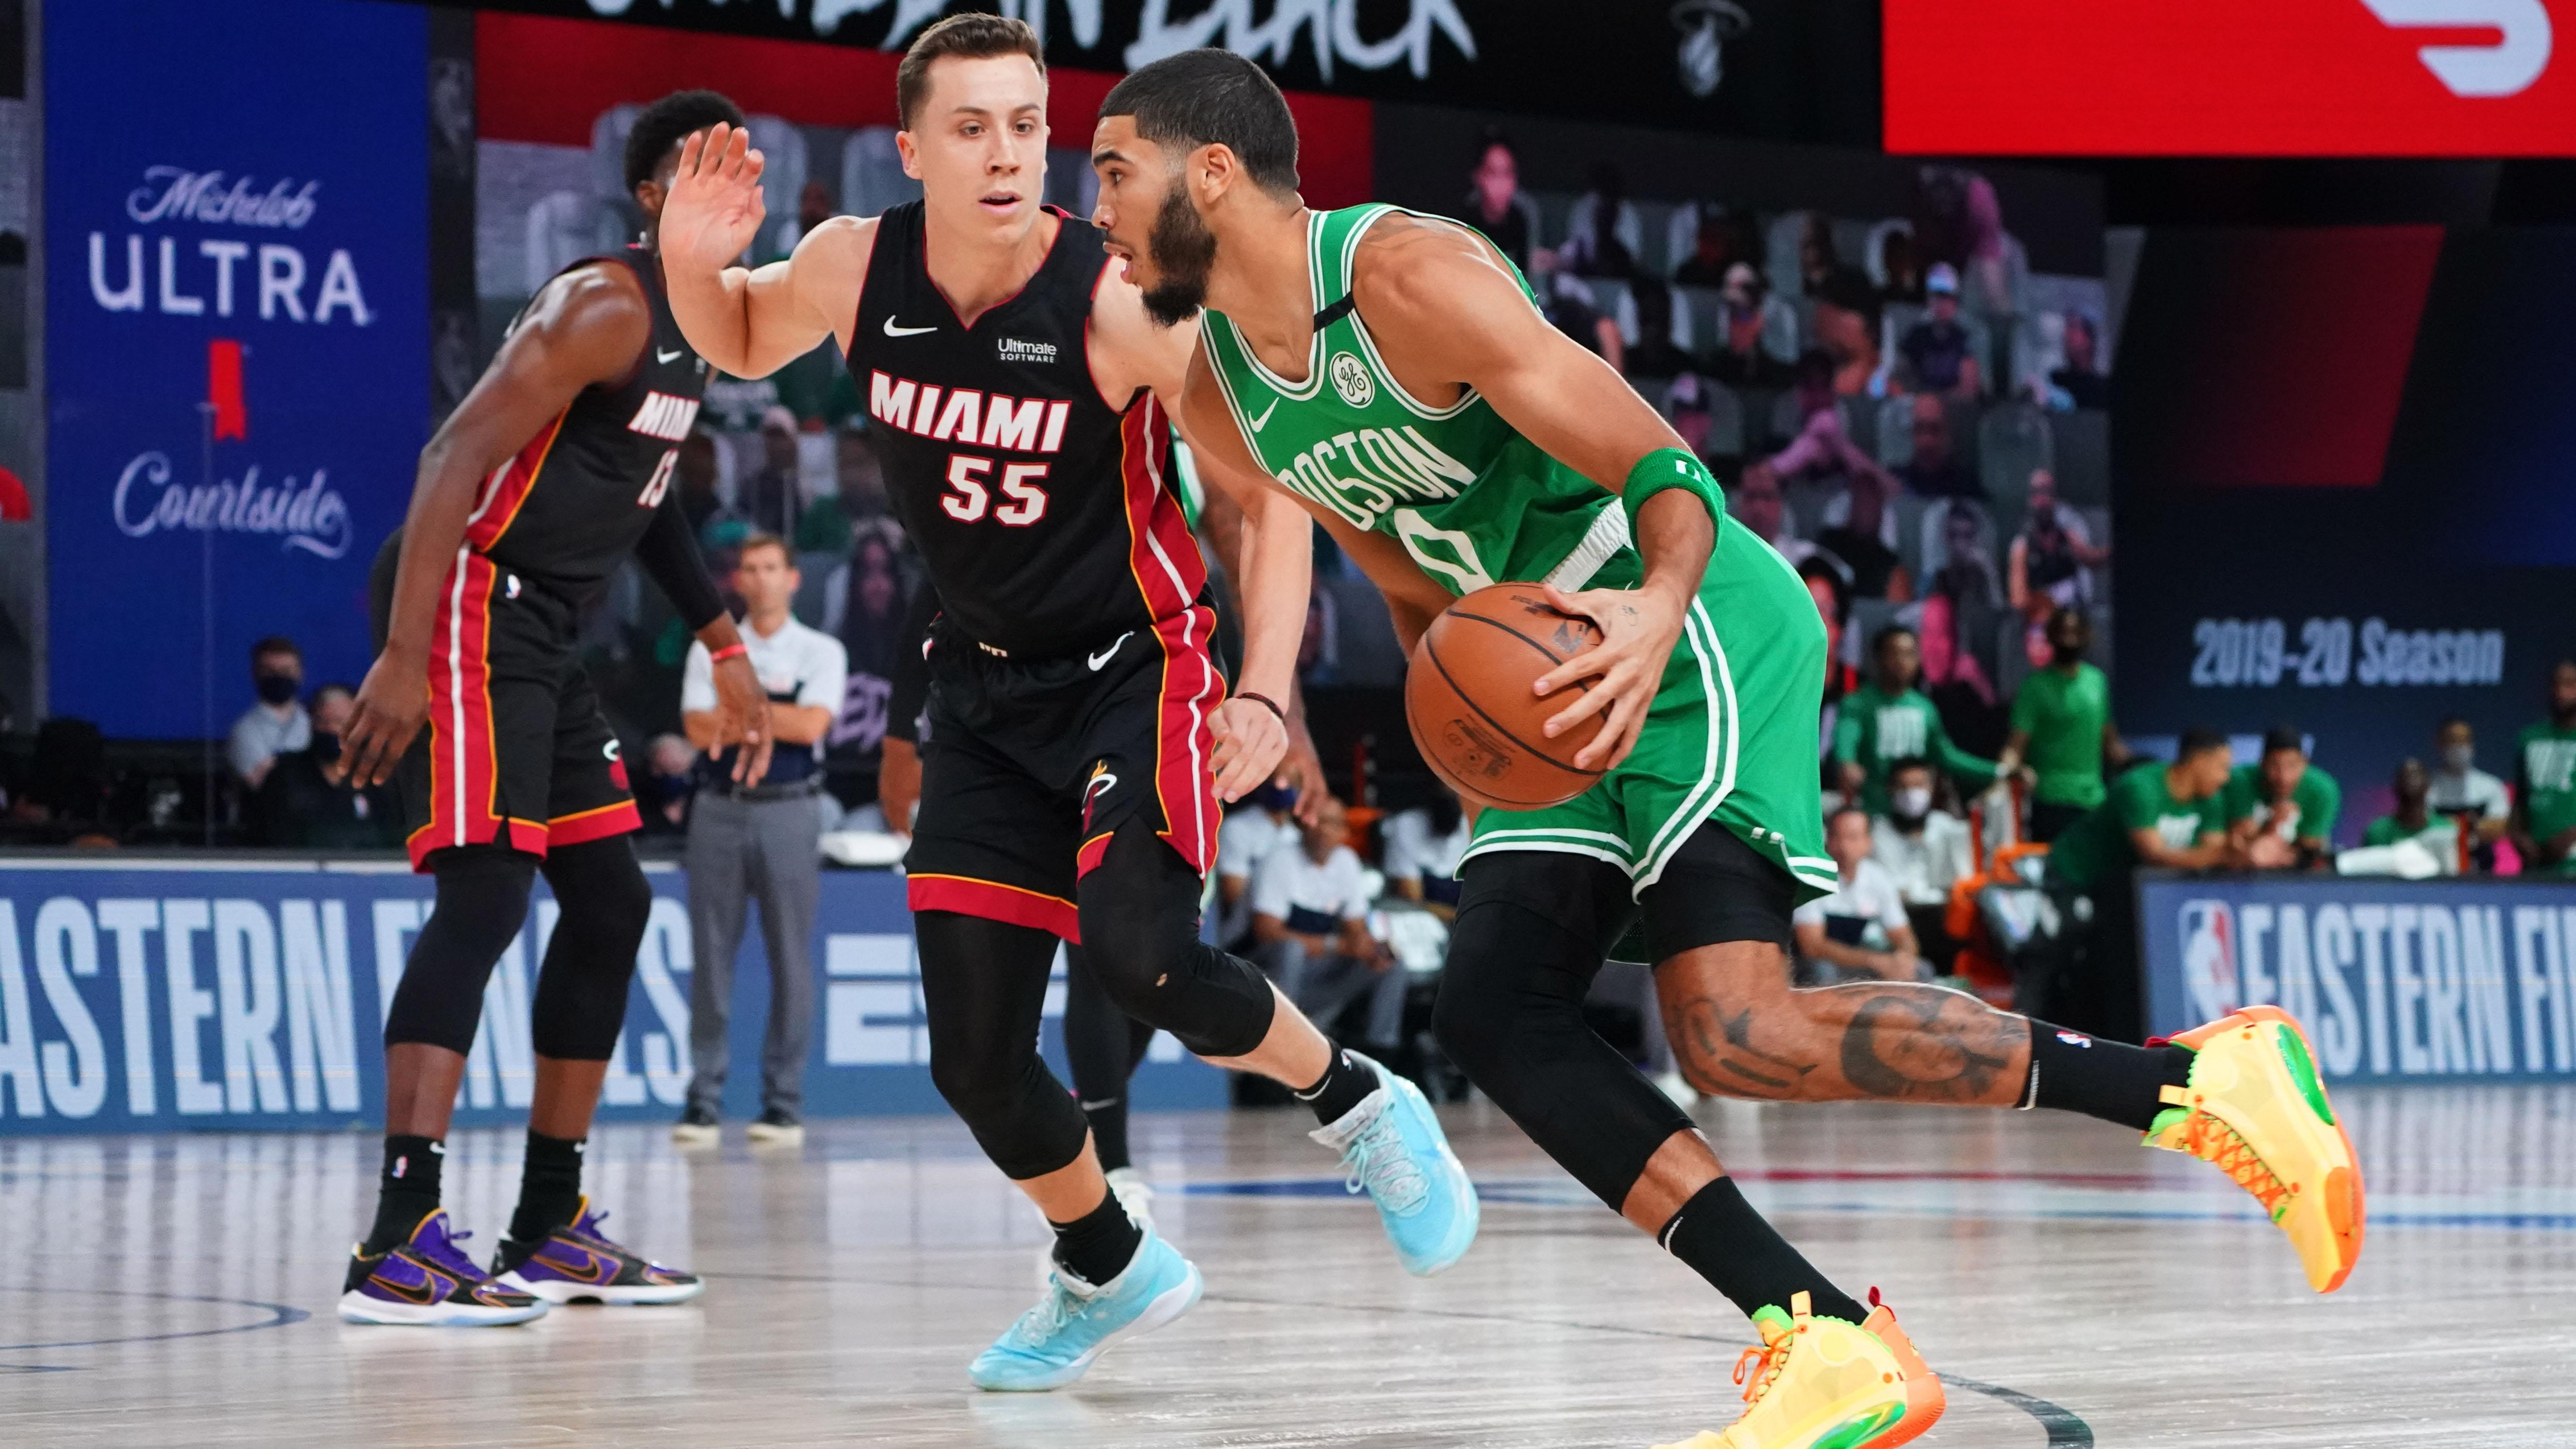 Five adjustments the Celtics made in Game 3 and need to repeat to keep winning